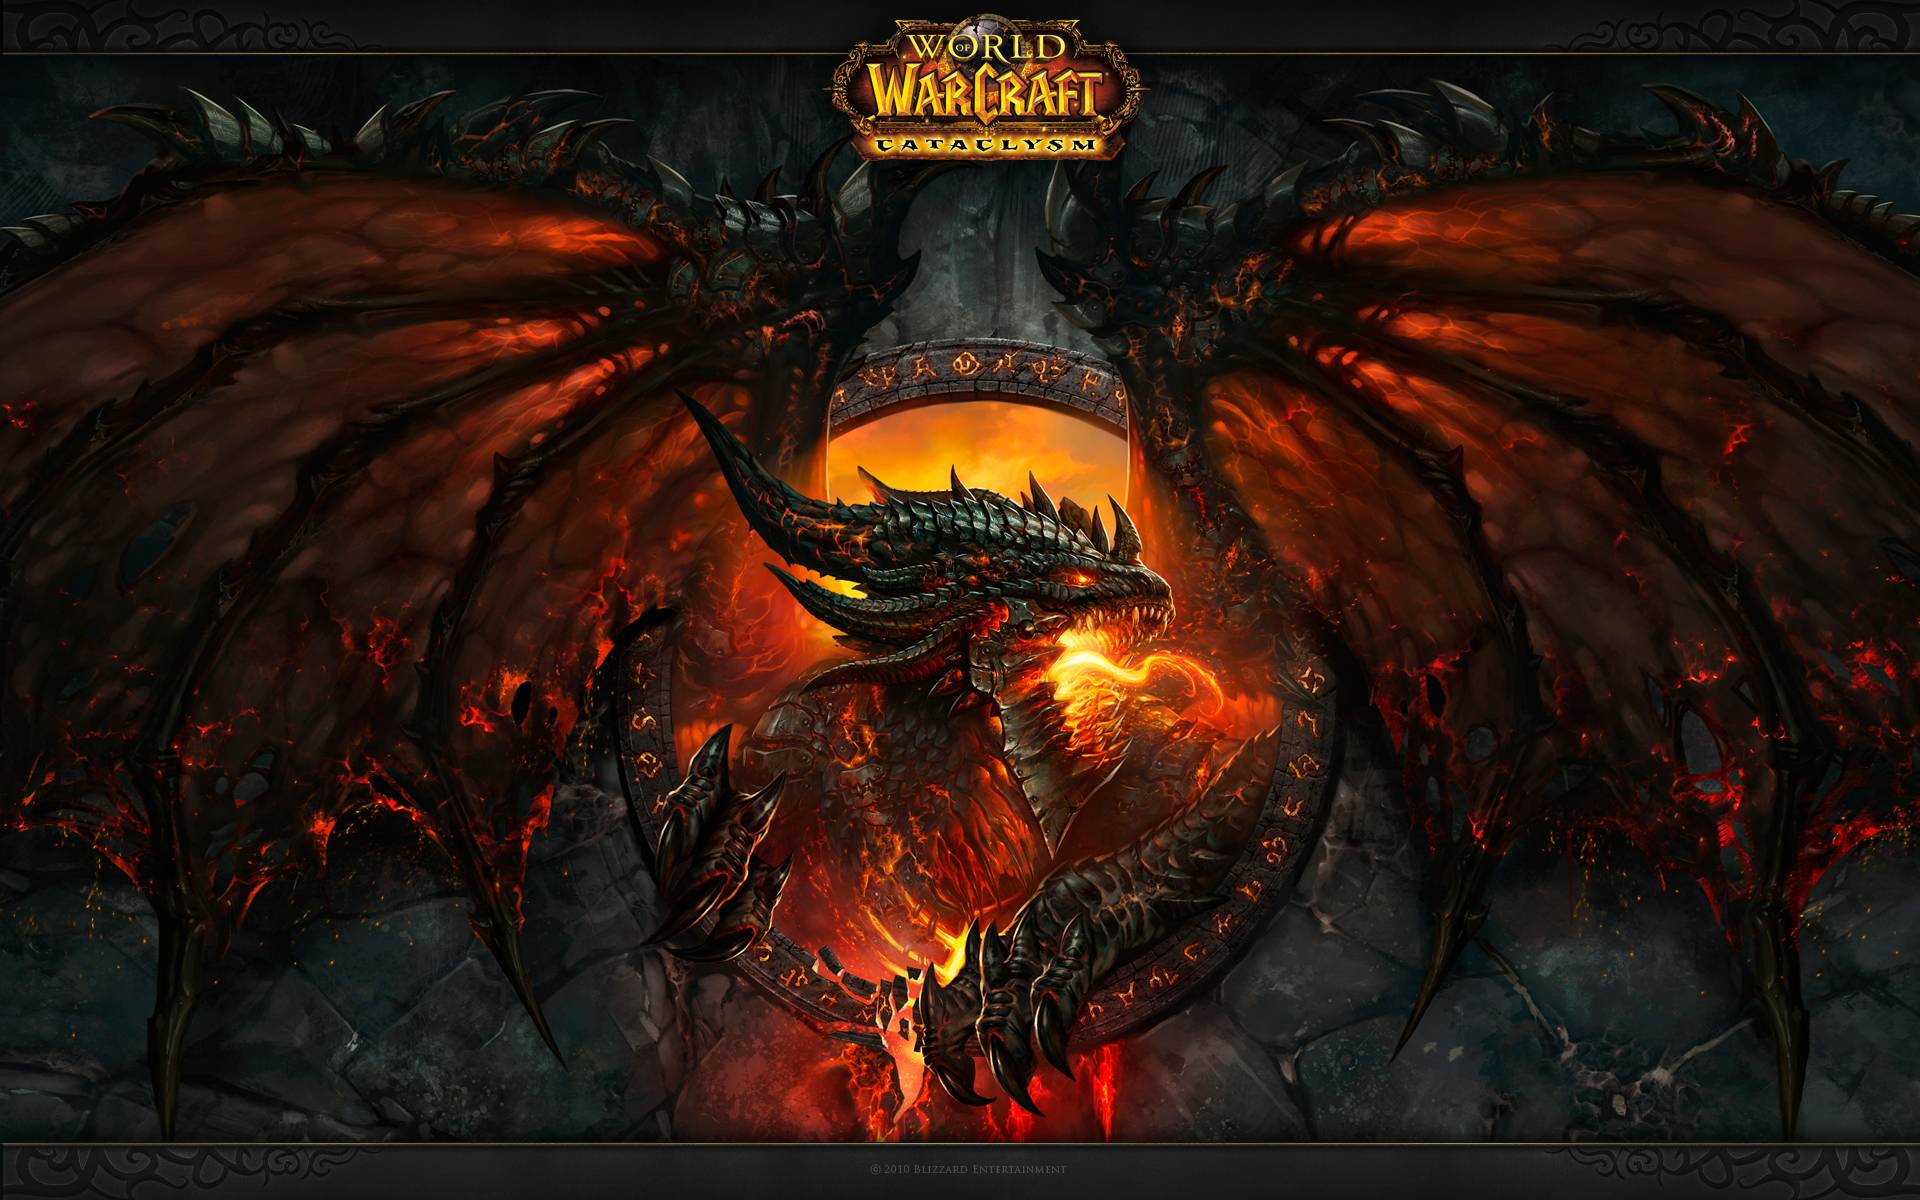 Wallpapers For > World Of Warcraft Wallpapers Alliance Vs Horde